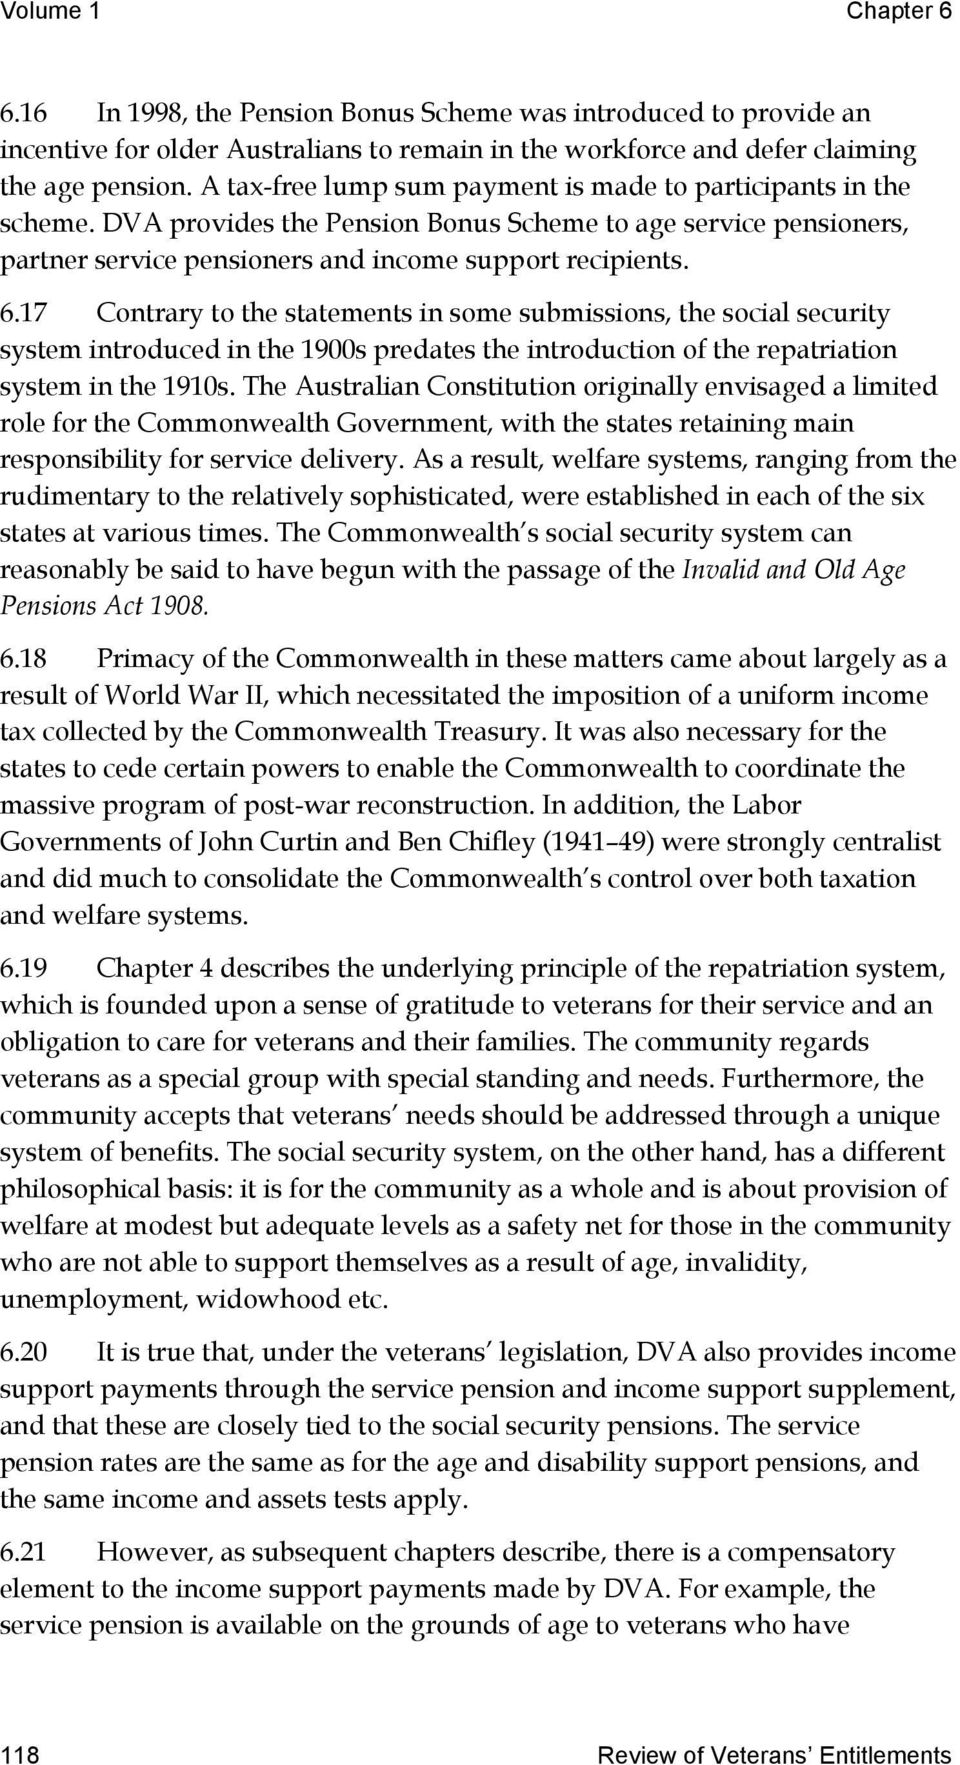 17 Contrary to the statements in some submissions, the social security  system introduced in the